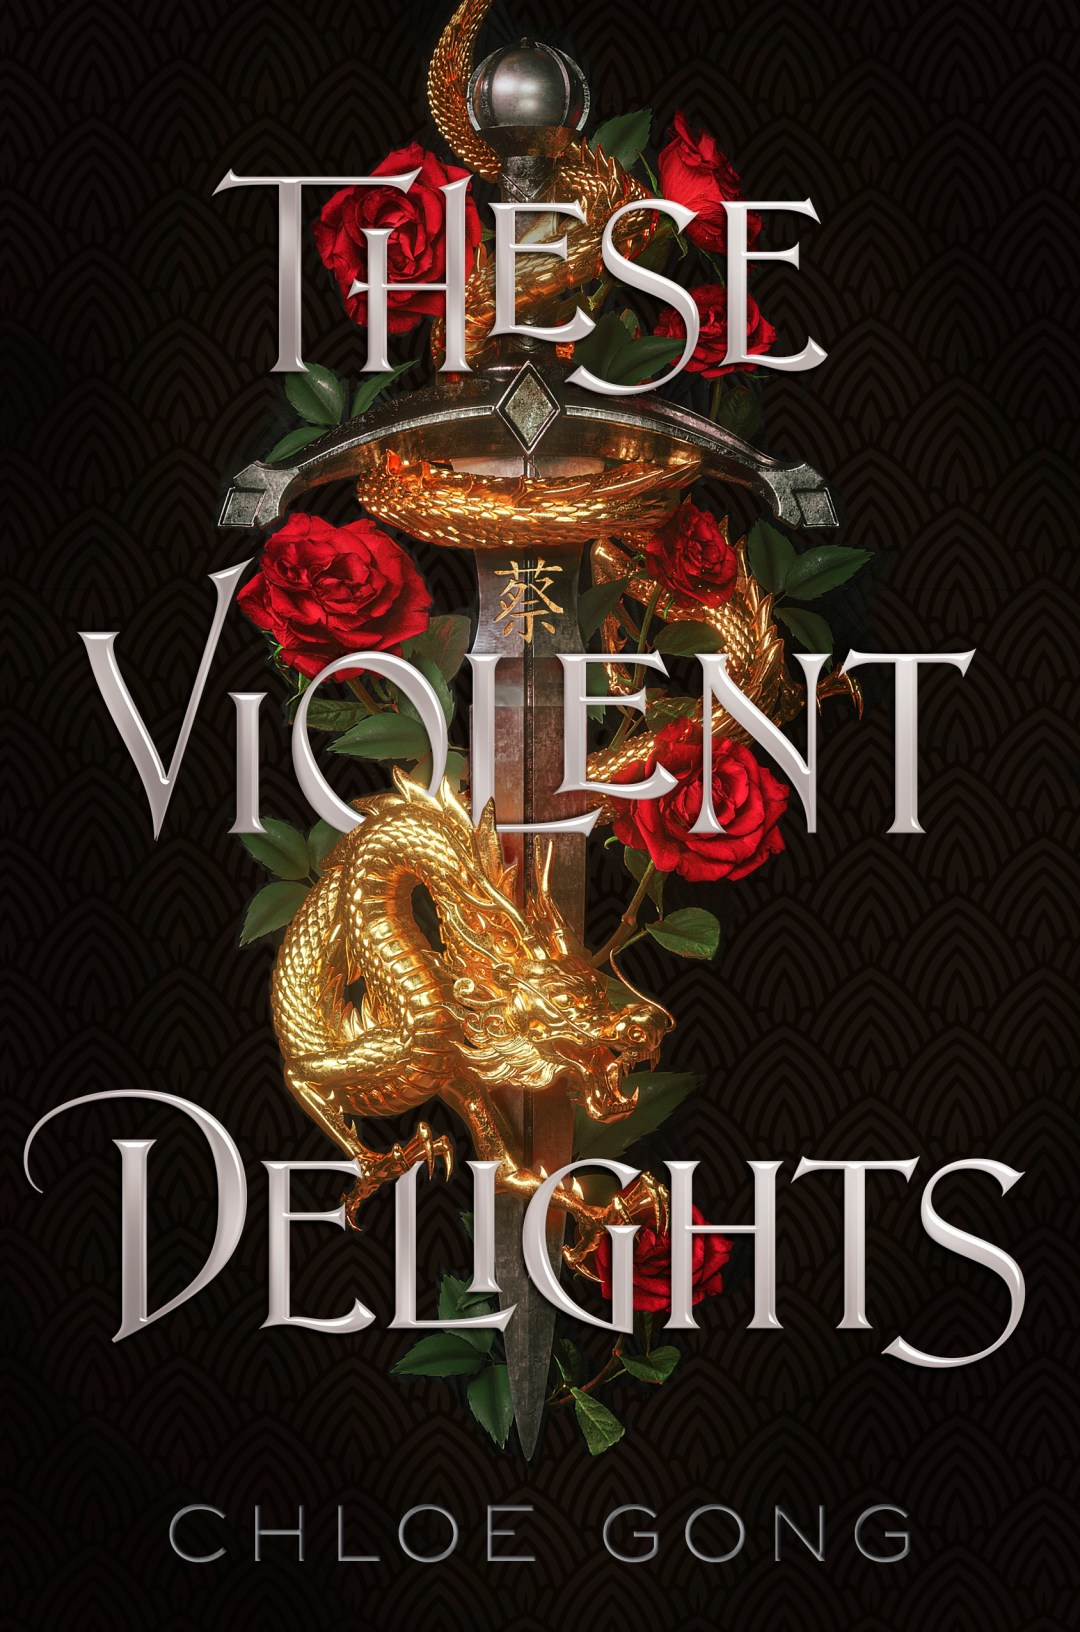 THESE VIOLENT DELIGHTS: A Chat with Chloe Gong